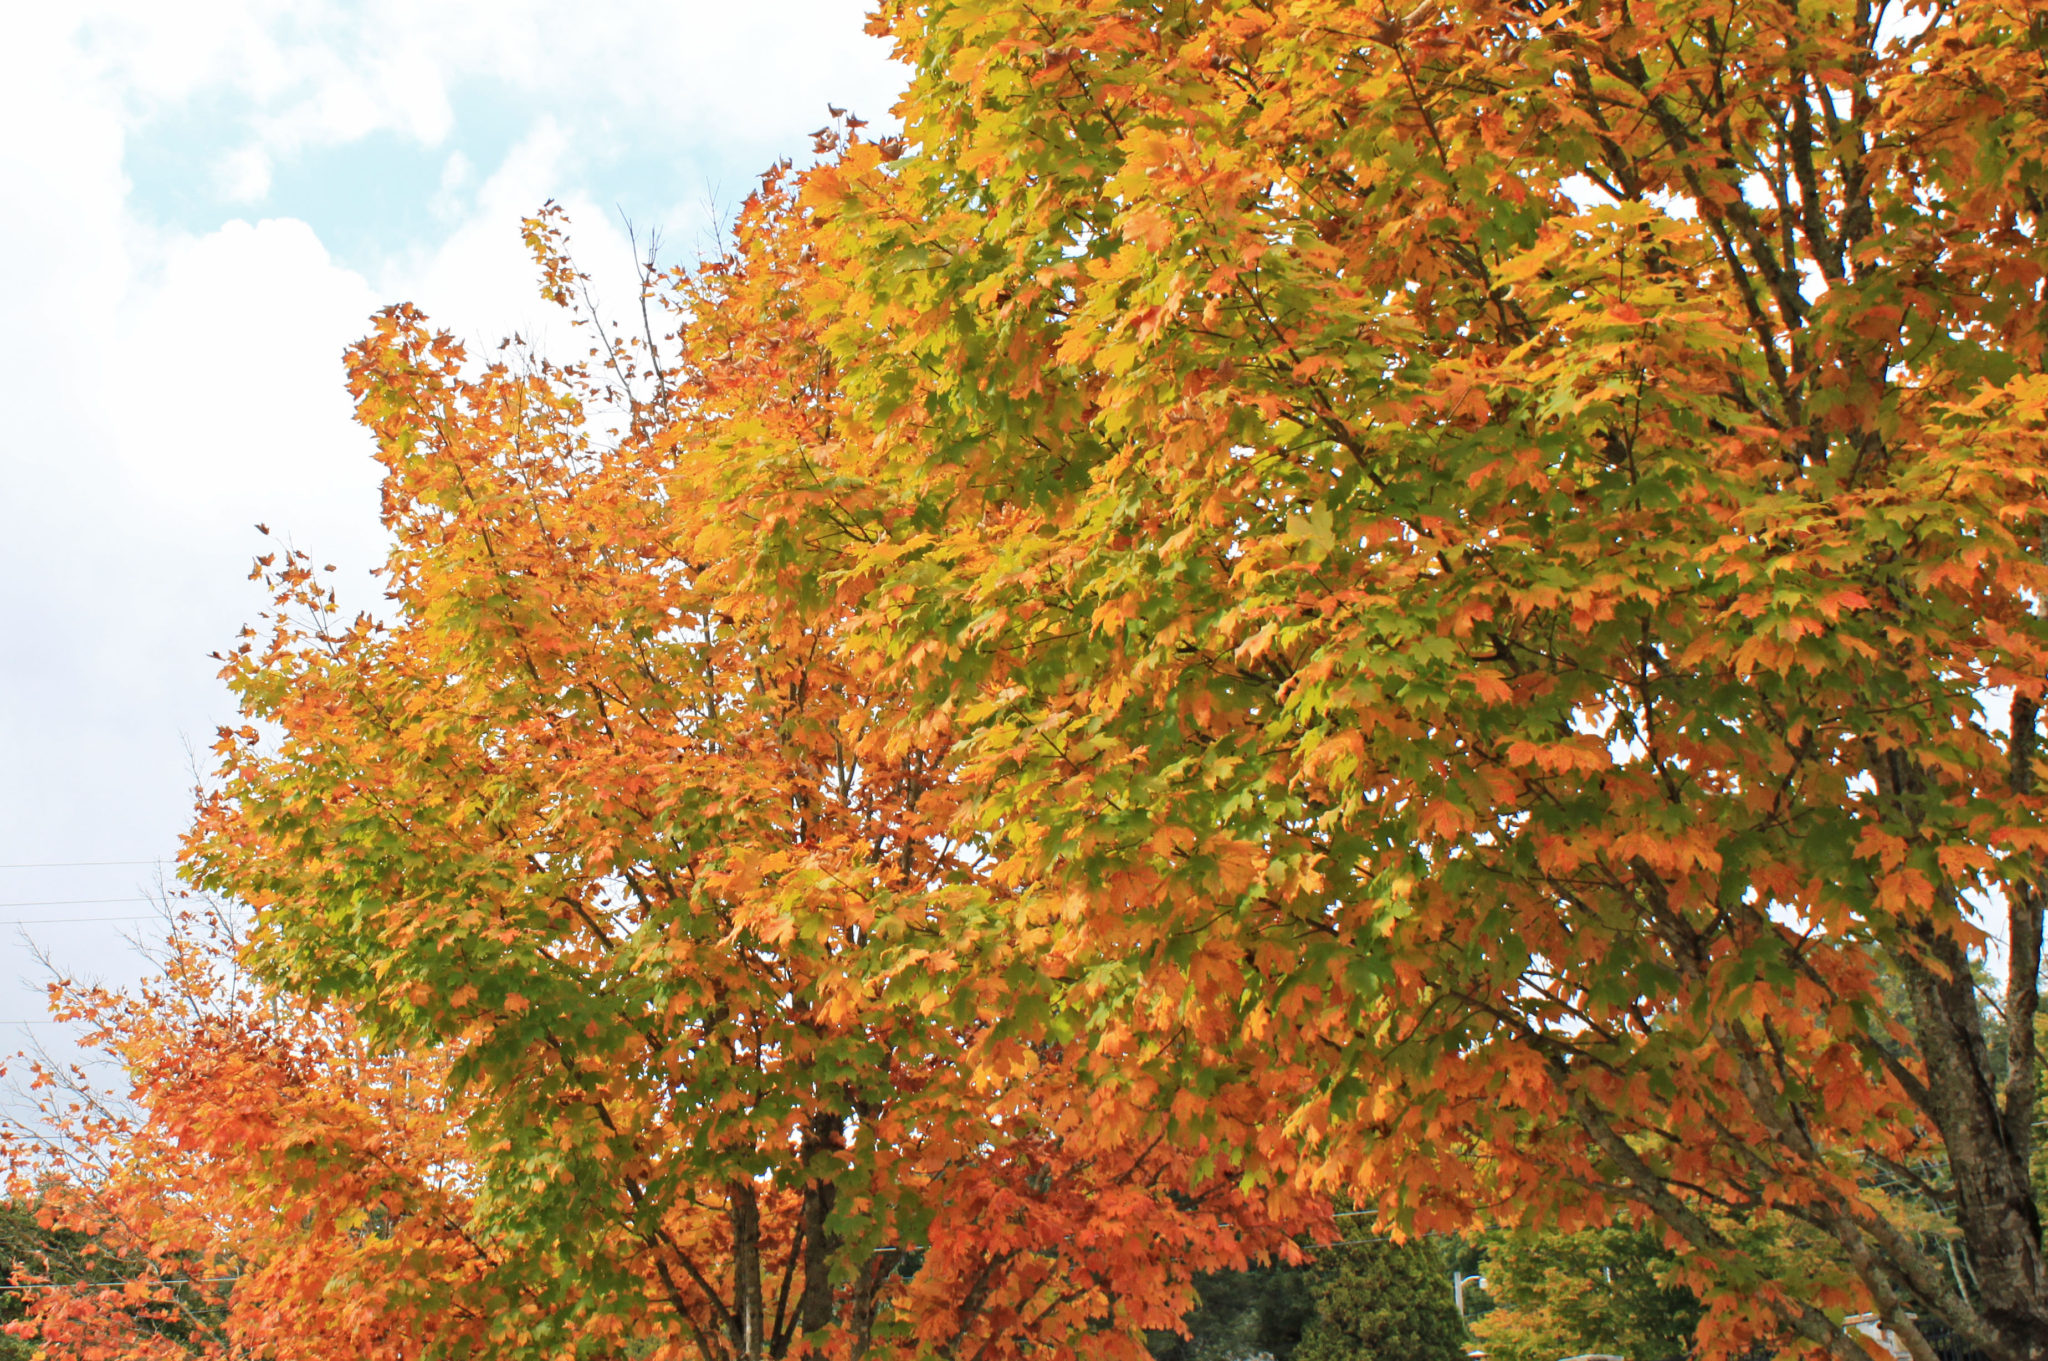 autumn maples with fall foliage in Blowing Rock